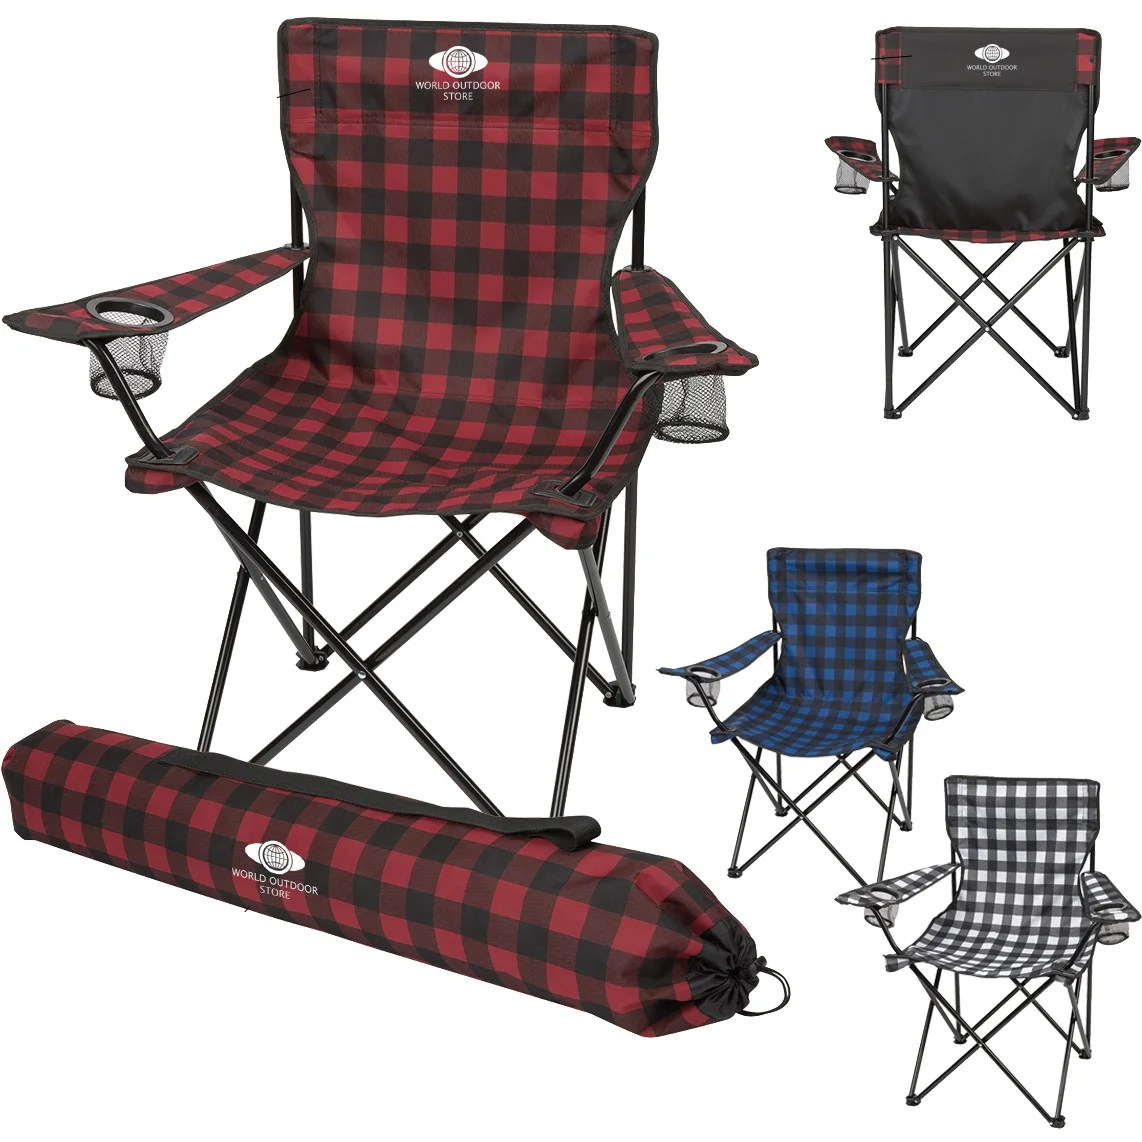 folding bag chair patio bed promotional northwoods with carrying bags custom personalized